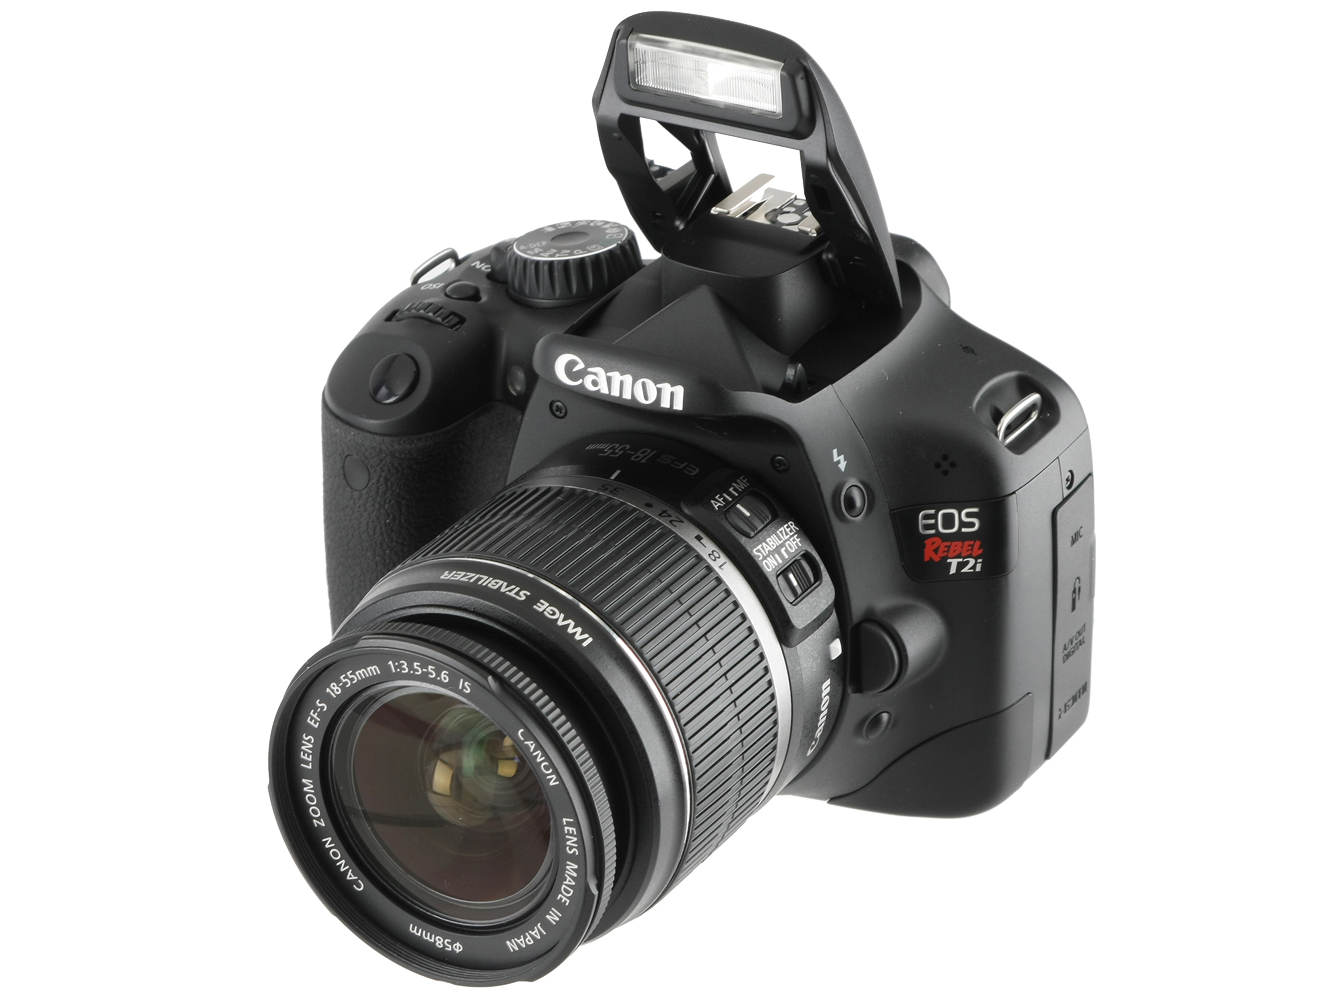 Canon EOS Rebel T2i $589